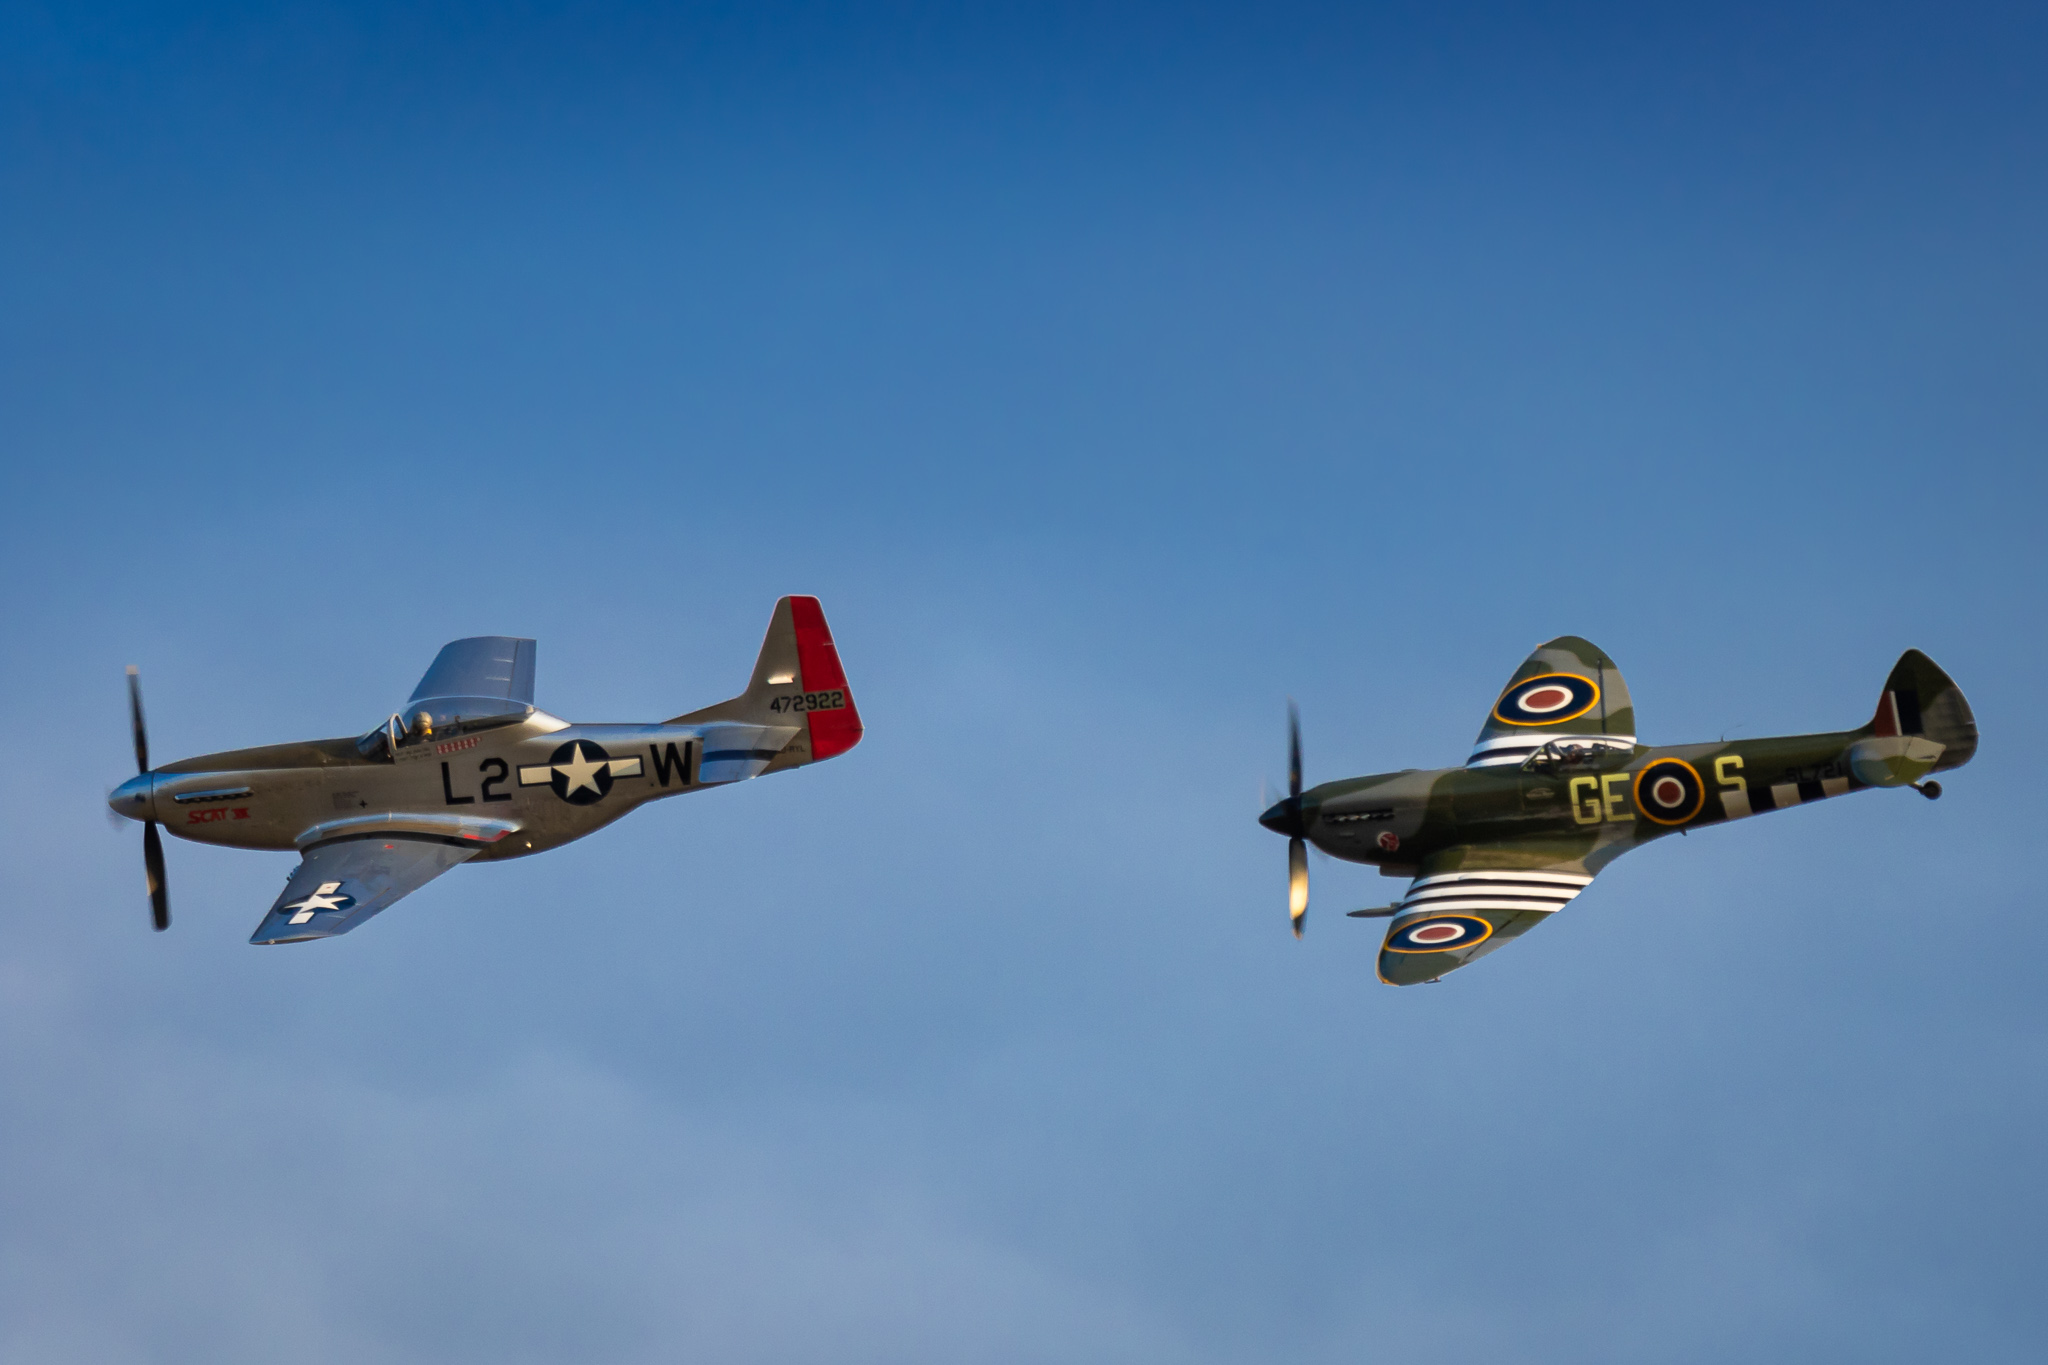 North American P-51 Mustang & Supermarine Spitfire